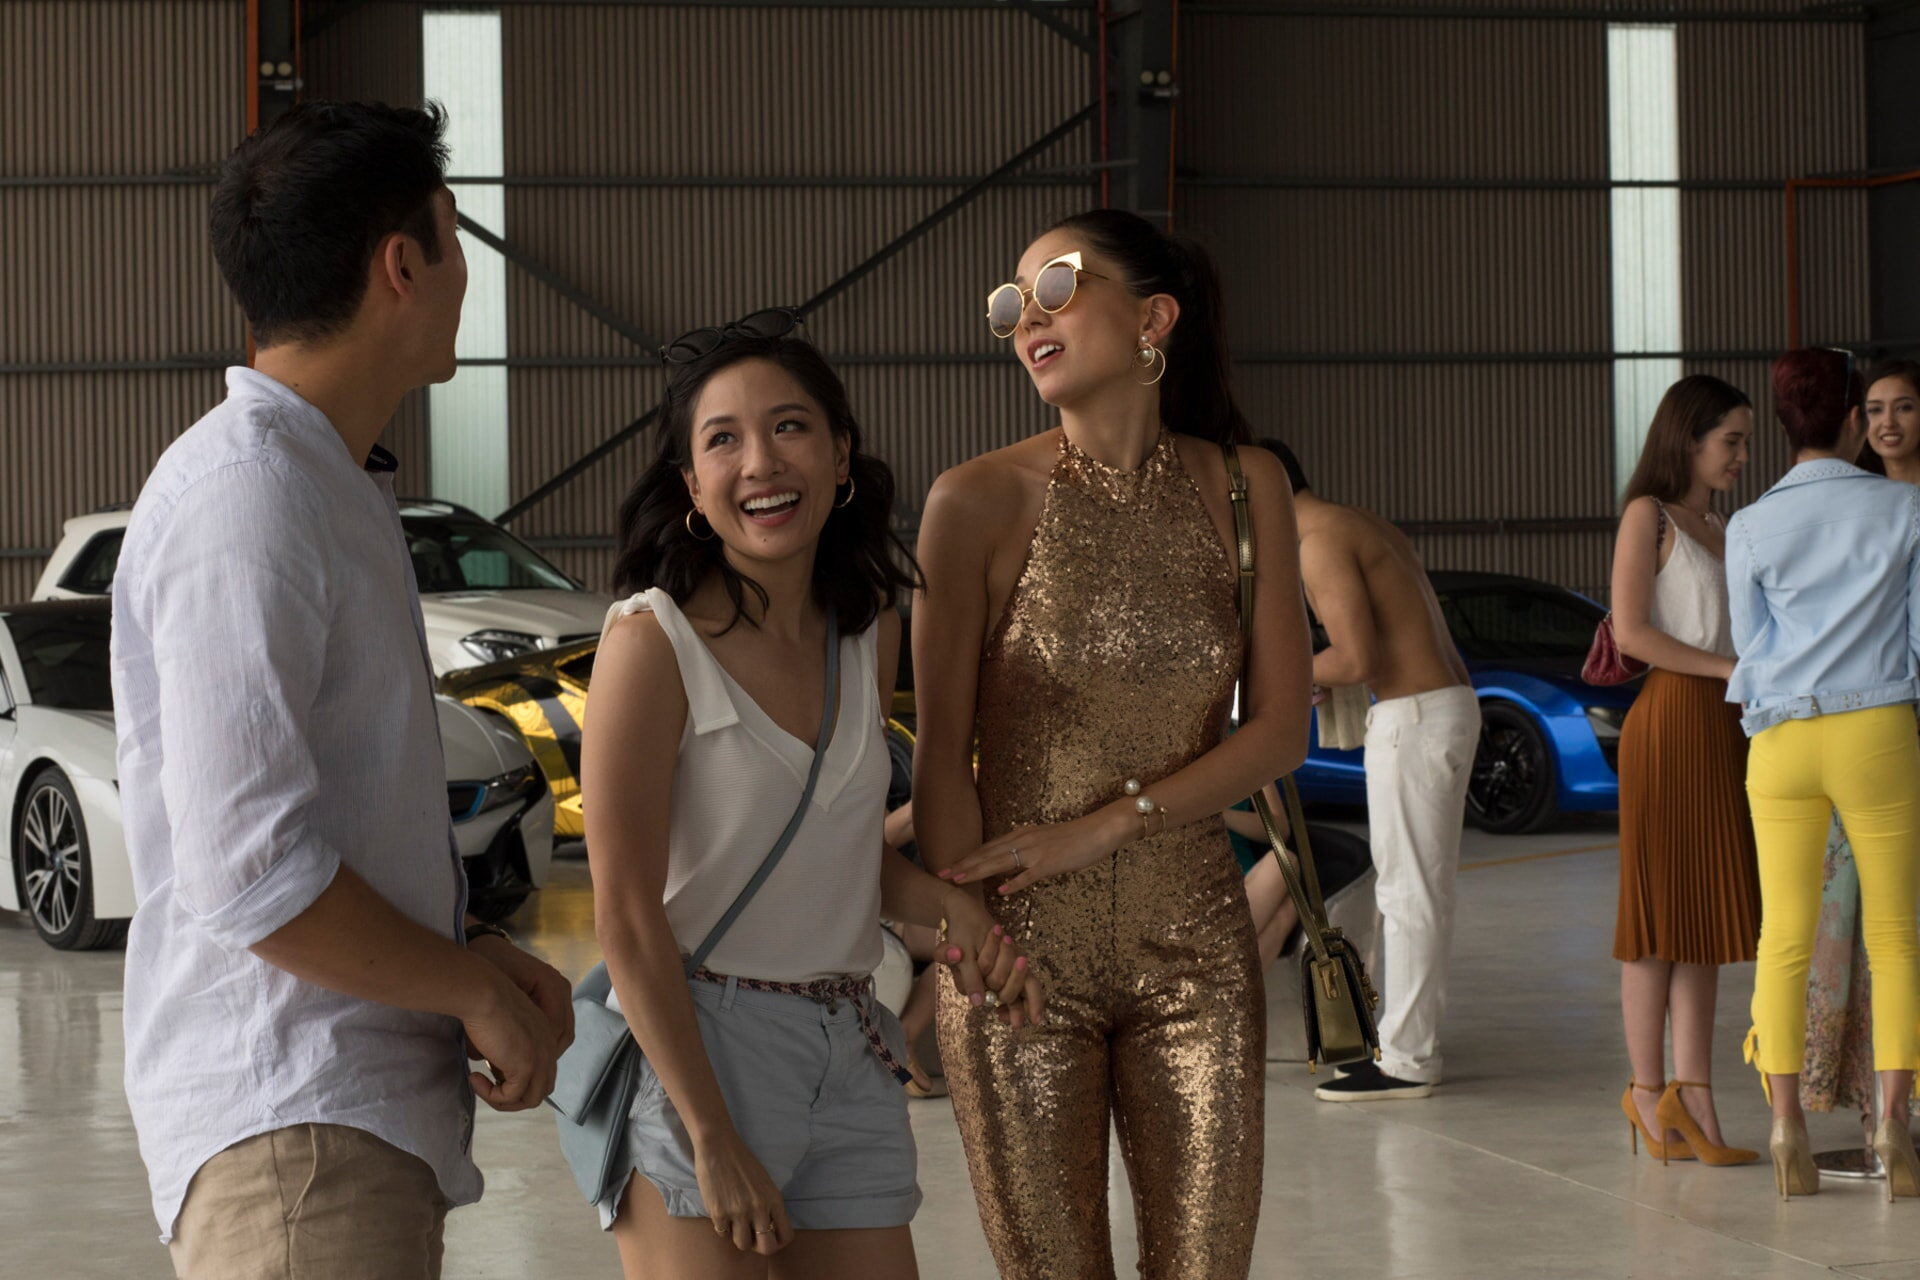 """(L-R) HENRY GOLDING as Nick, CONSTANCE WU as Rachel and SONOYA MIZUNO as Araminta in Warner Bros. Pictures' and SK Global Entertainment's contemporary romantic comedy """"CRAZY RICH ASIANS,"""" a Warner Bros. Pictures release."""